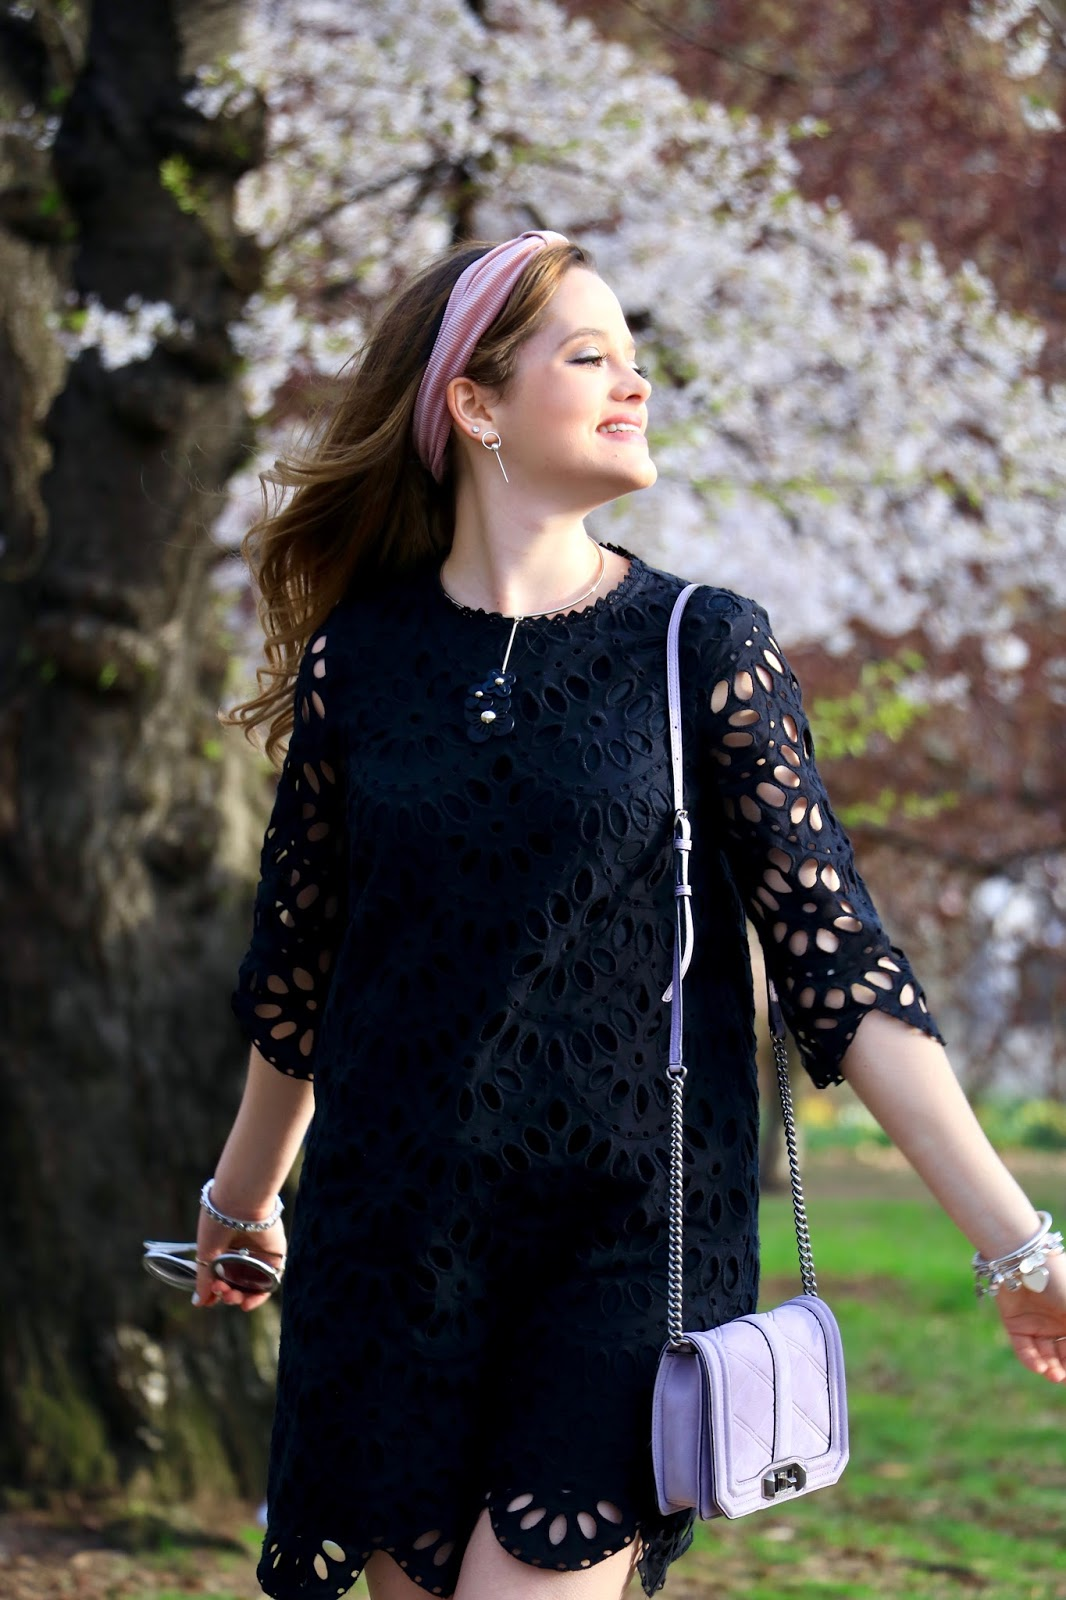 Nyc fashion blogger Kathleen Harper shows how to wear an lbd